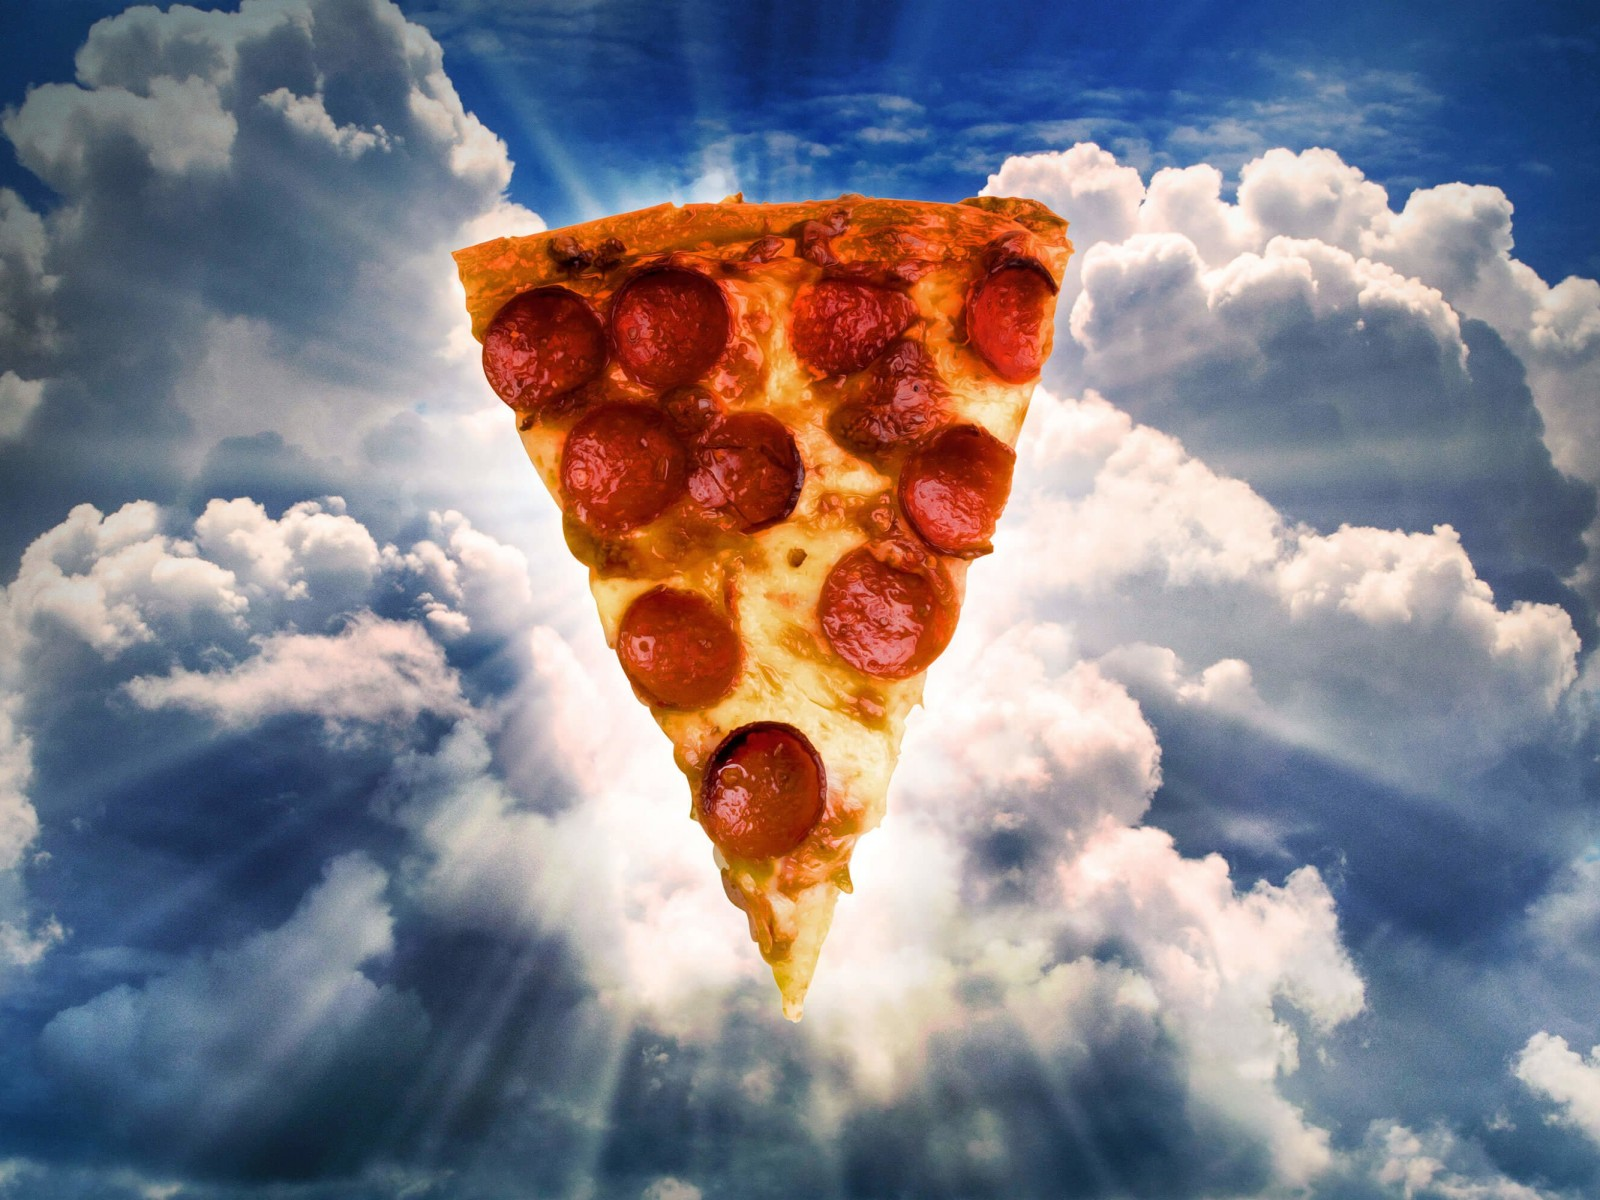 Holy Pizza Wallpaper for Desktop 1600x1200